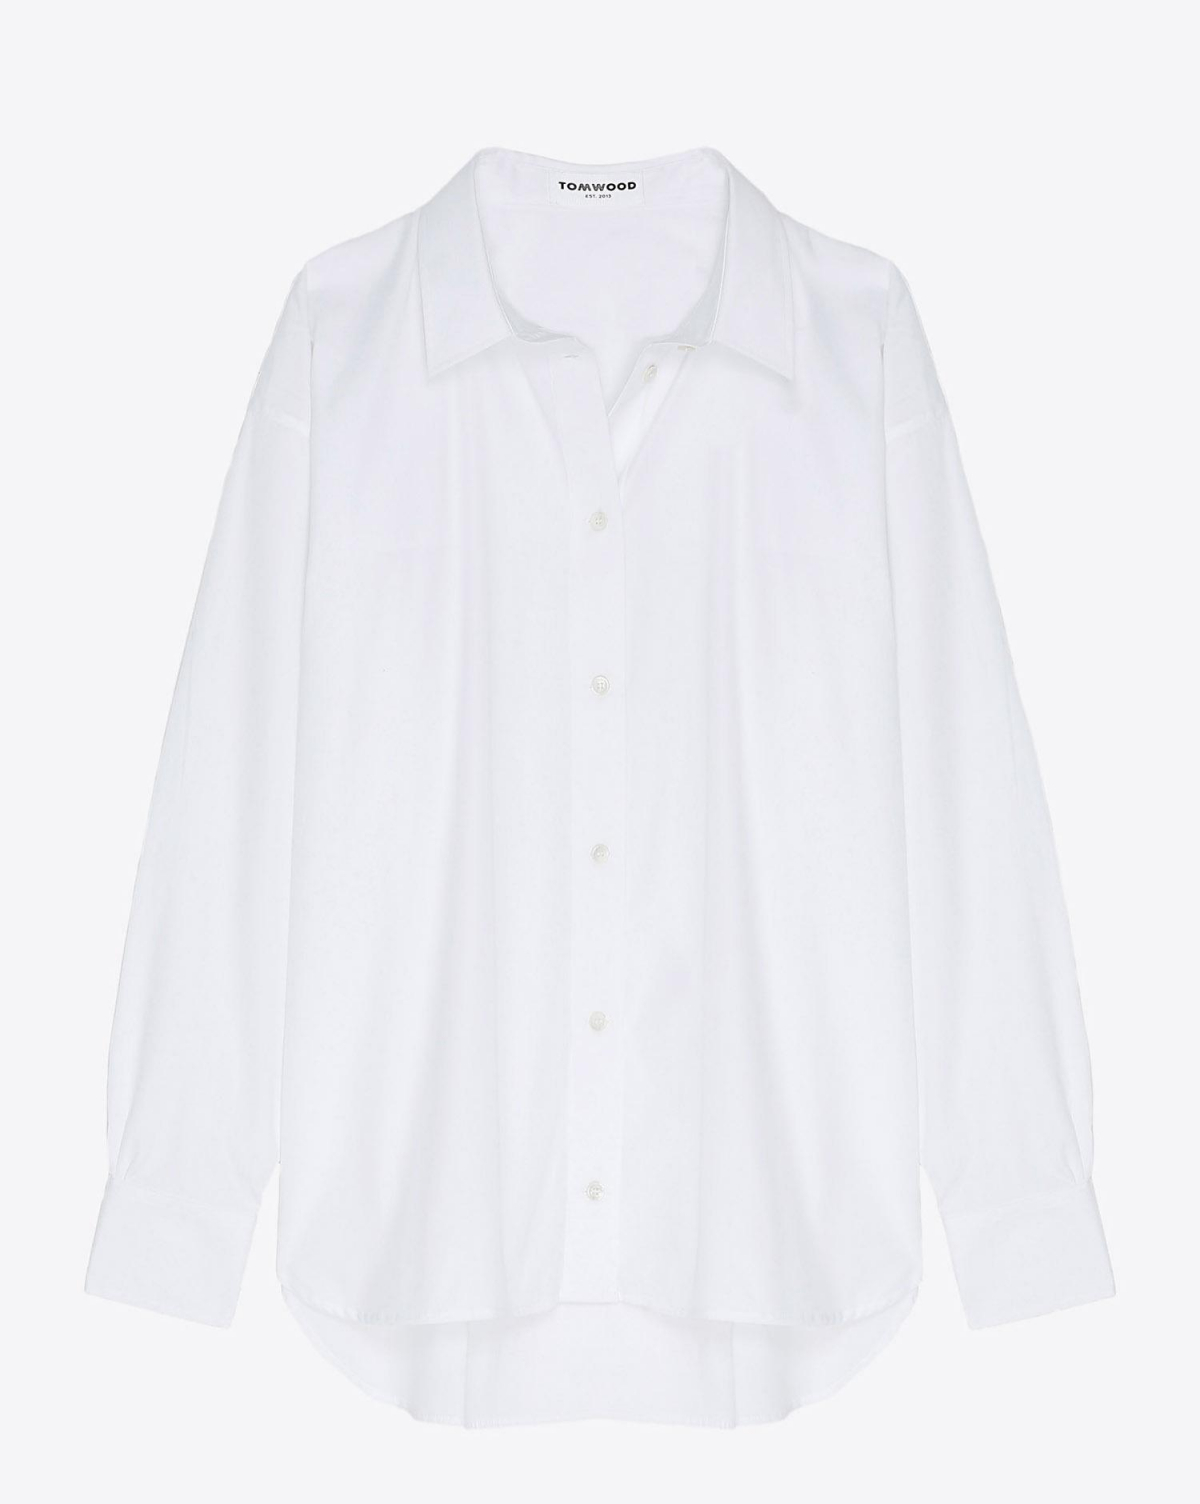 Tom Wood Kim Shirt - Virgin White  Blanc